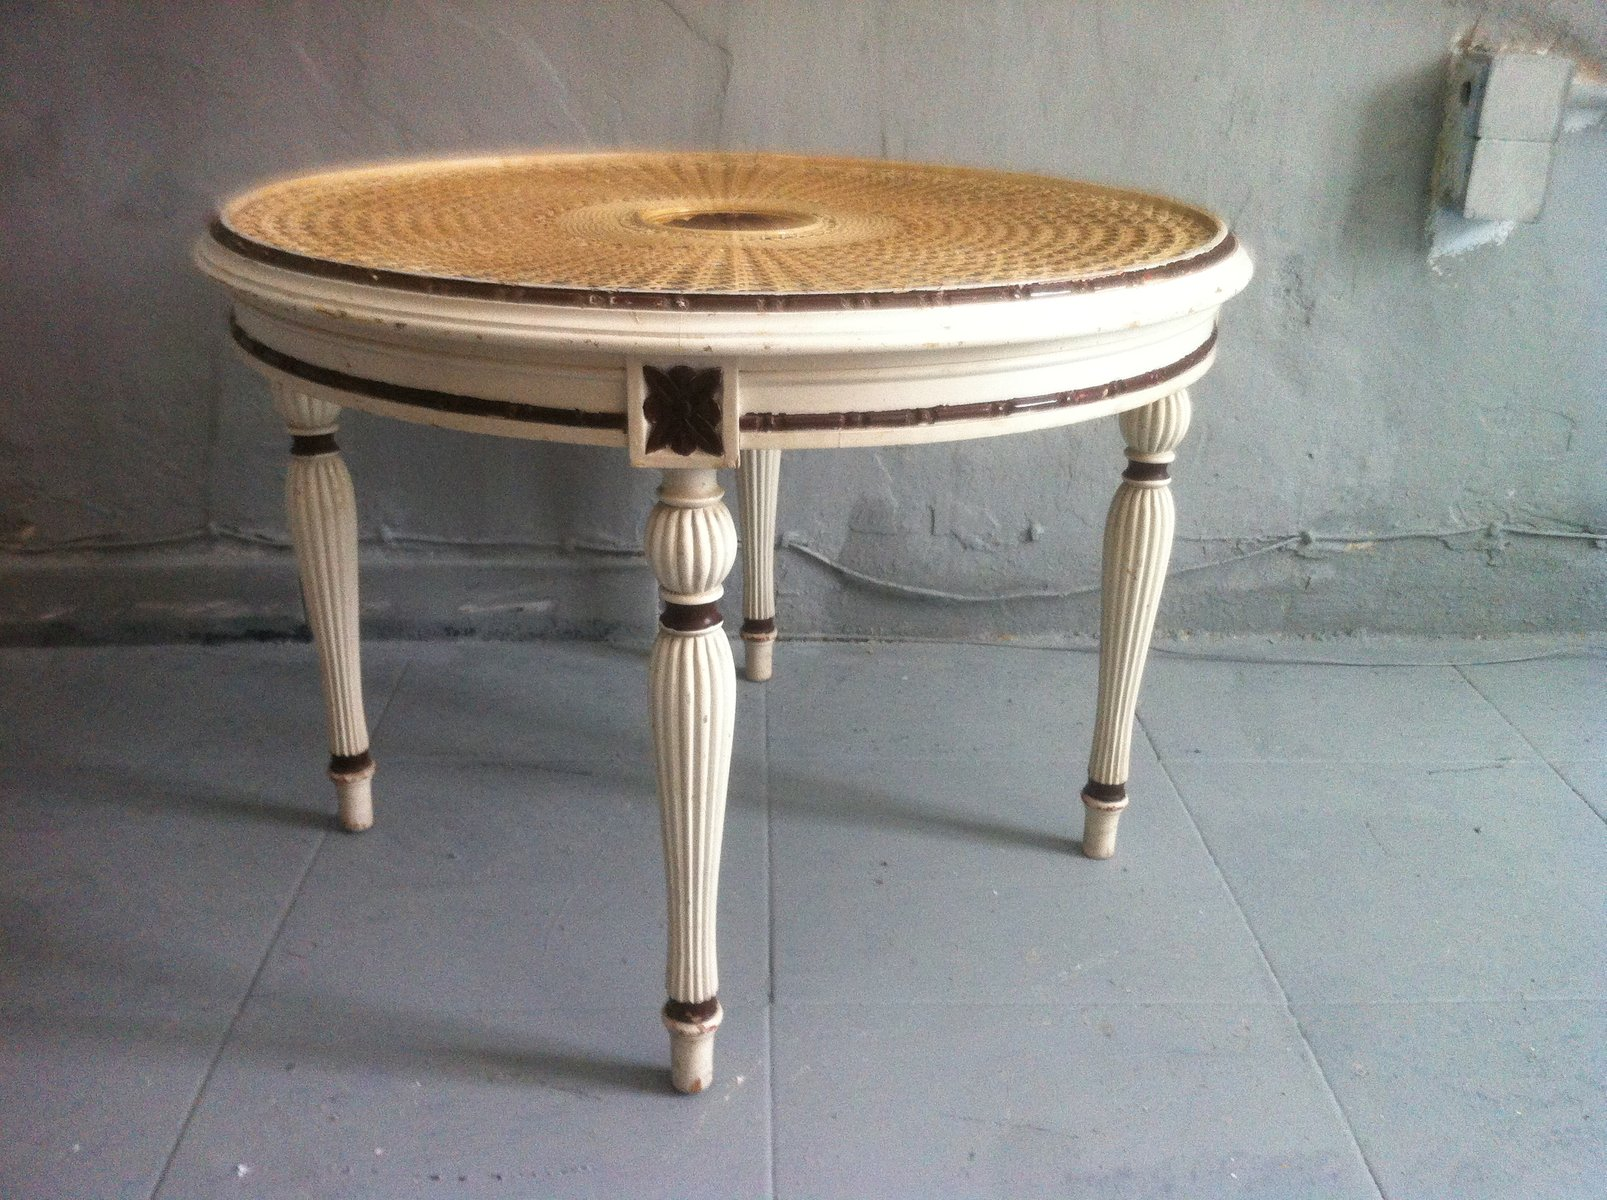 ... Carved Round Coffee Table, 1960s 8. $739.00. Price Per Piece